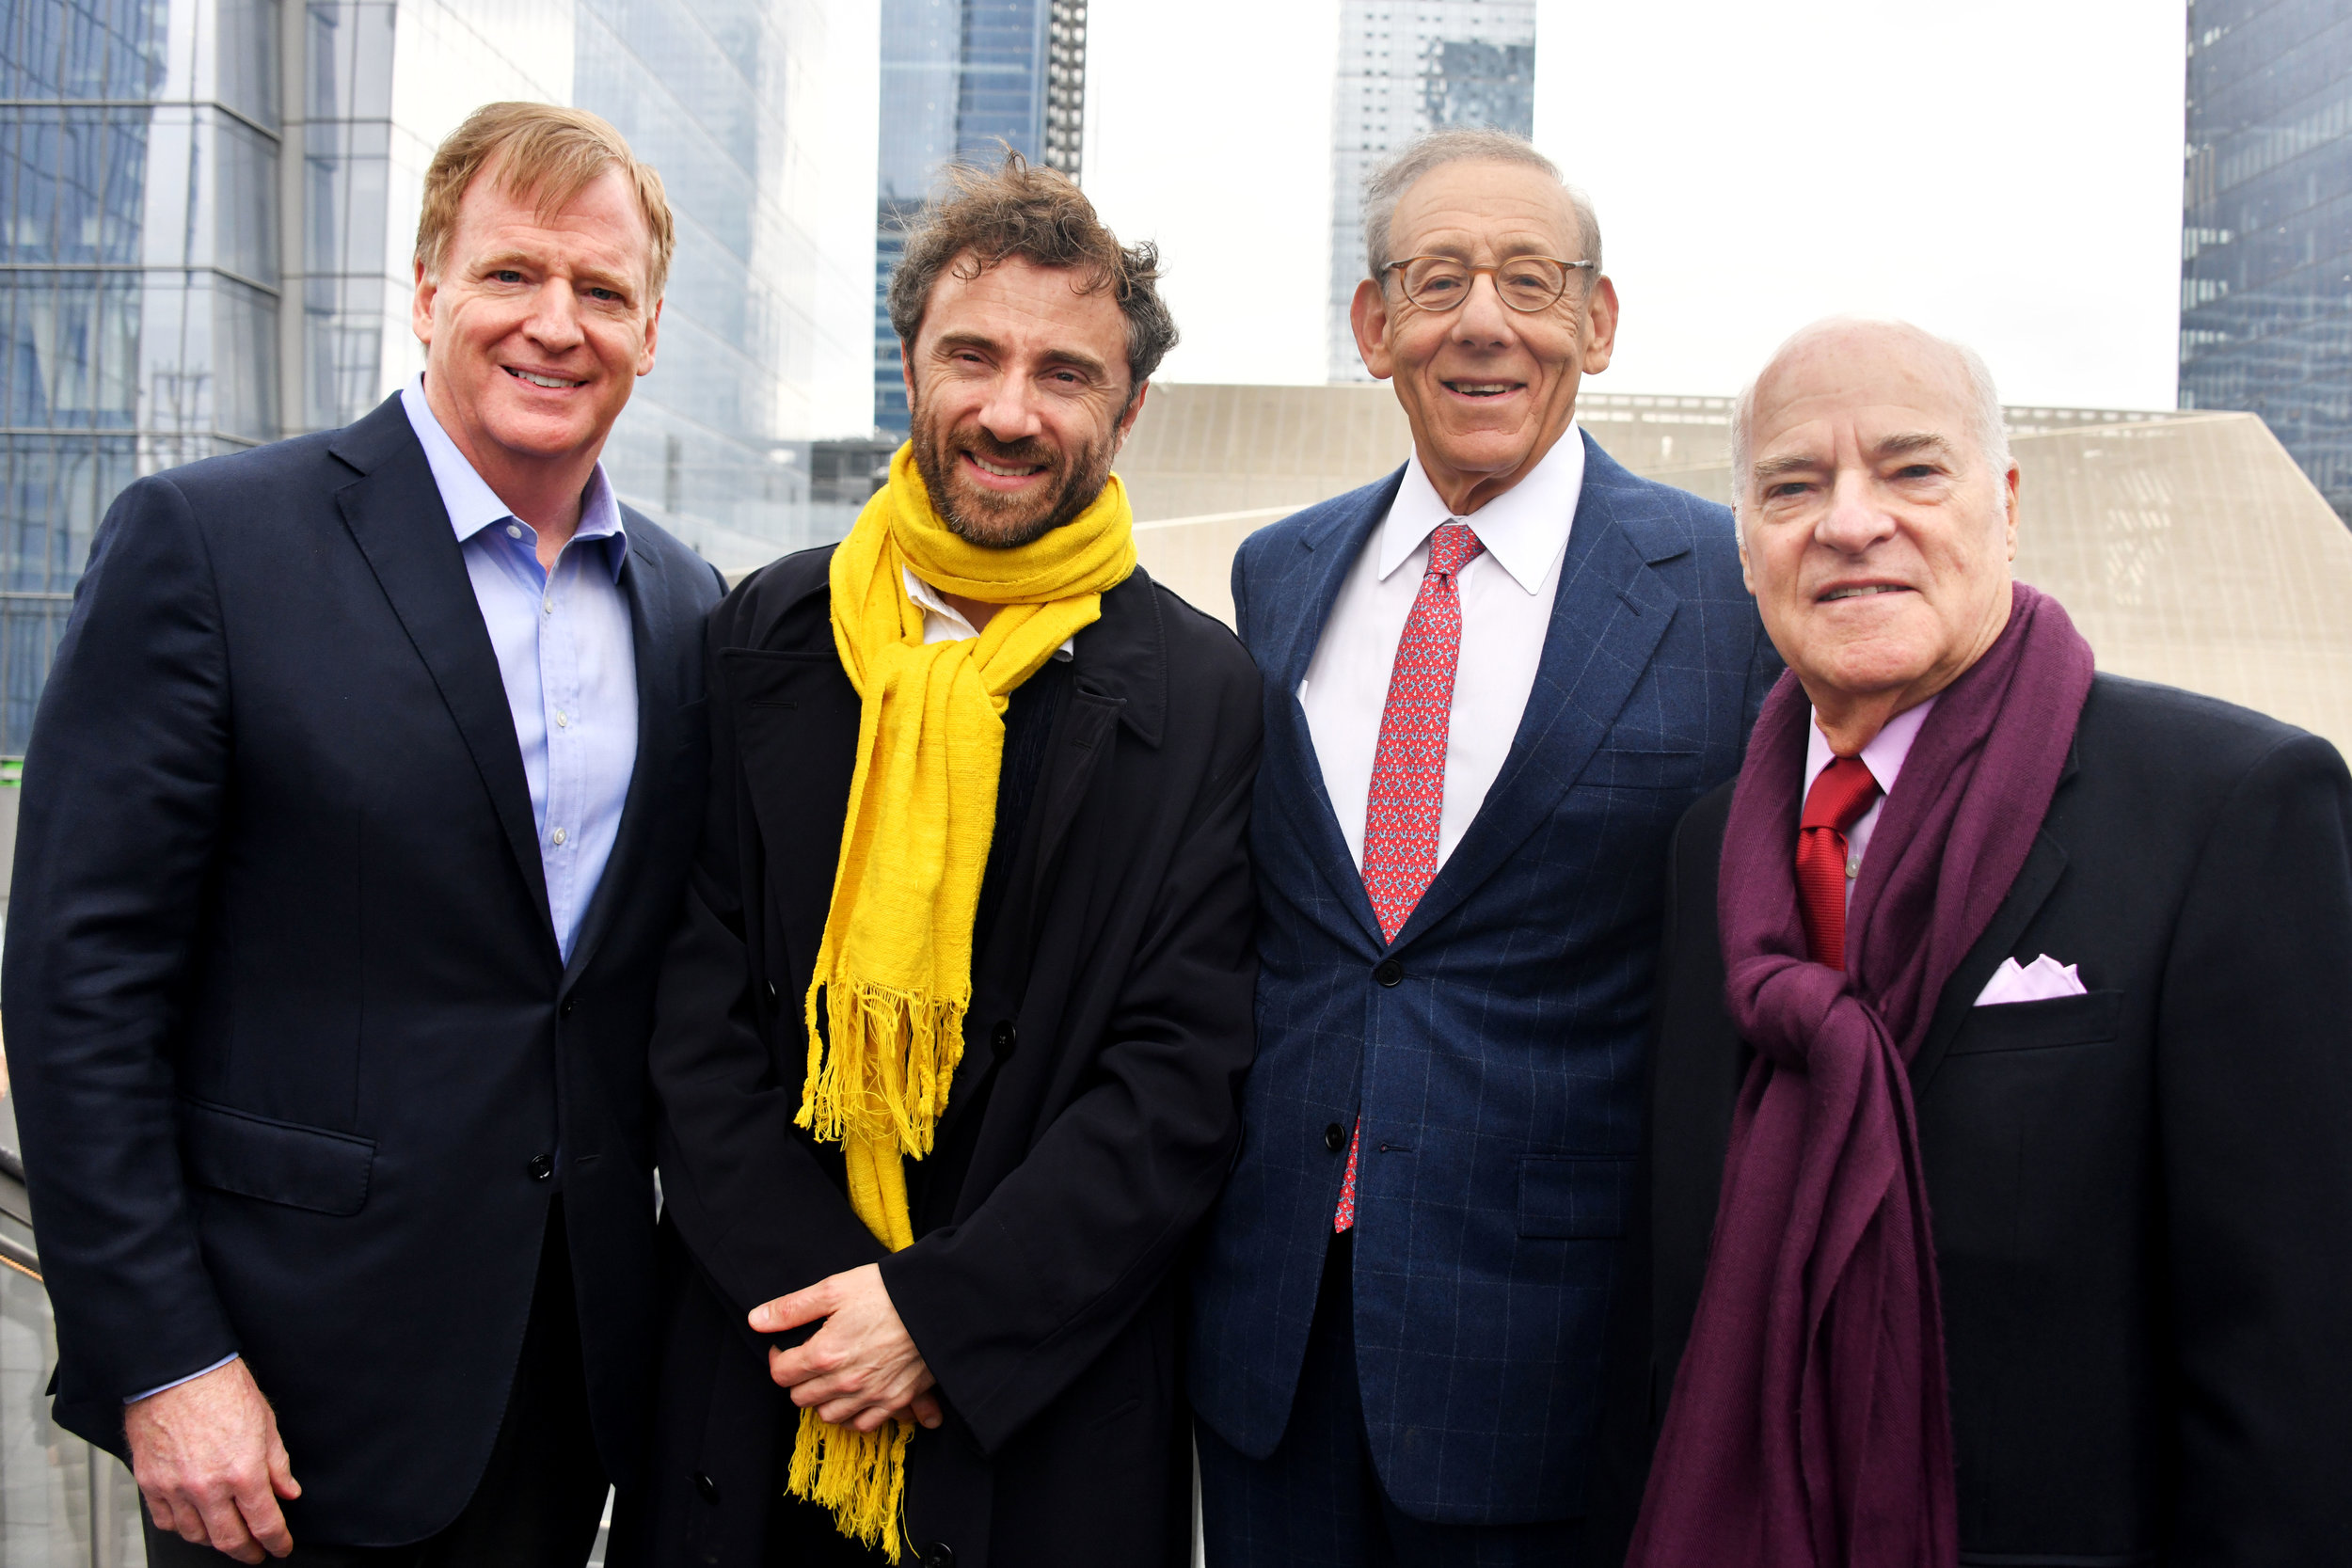 Roger Goodell, Thomas Heatherwick, Stephen Ross & Henry Kravis